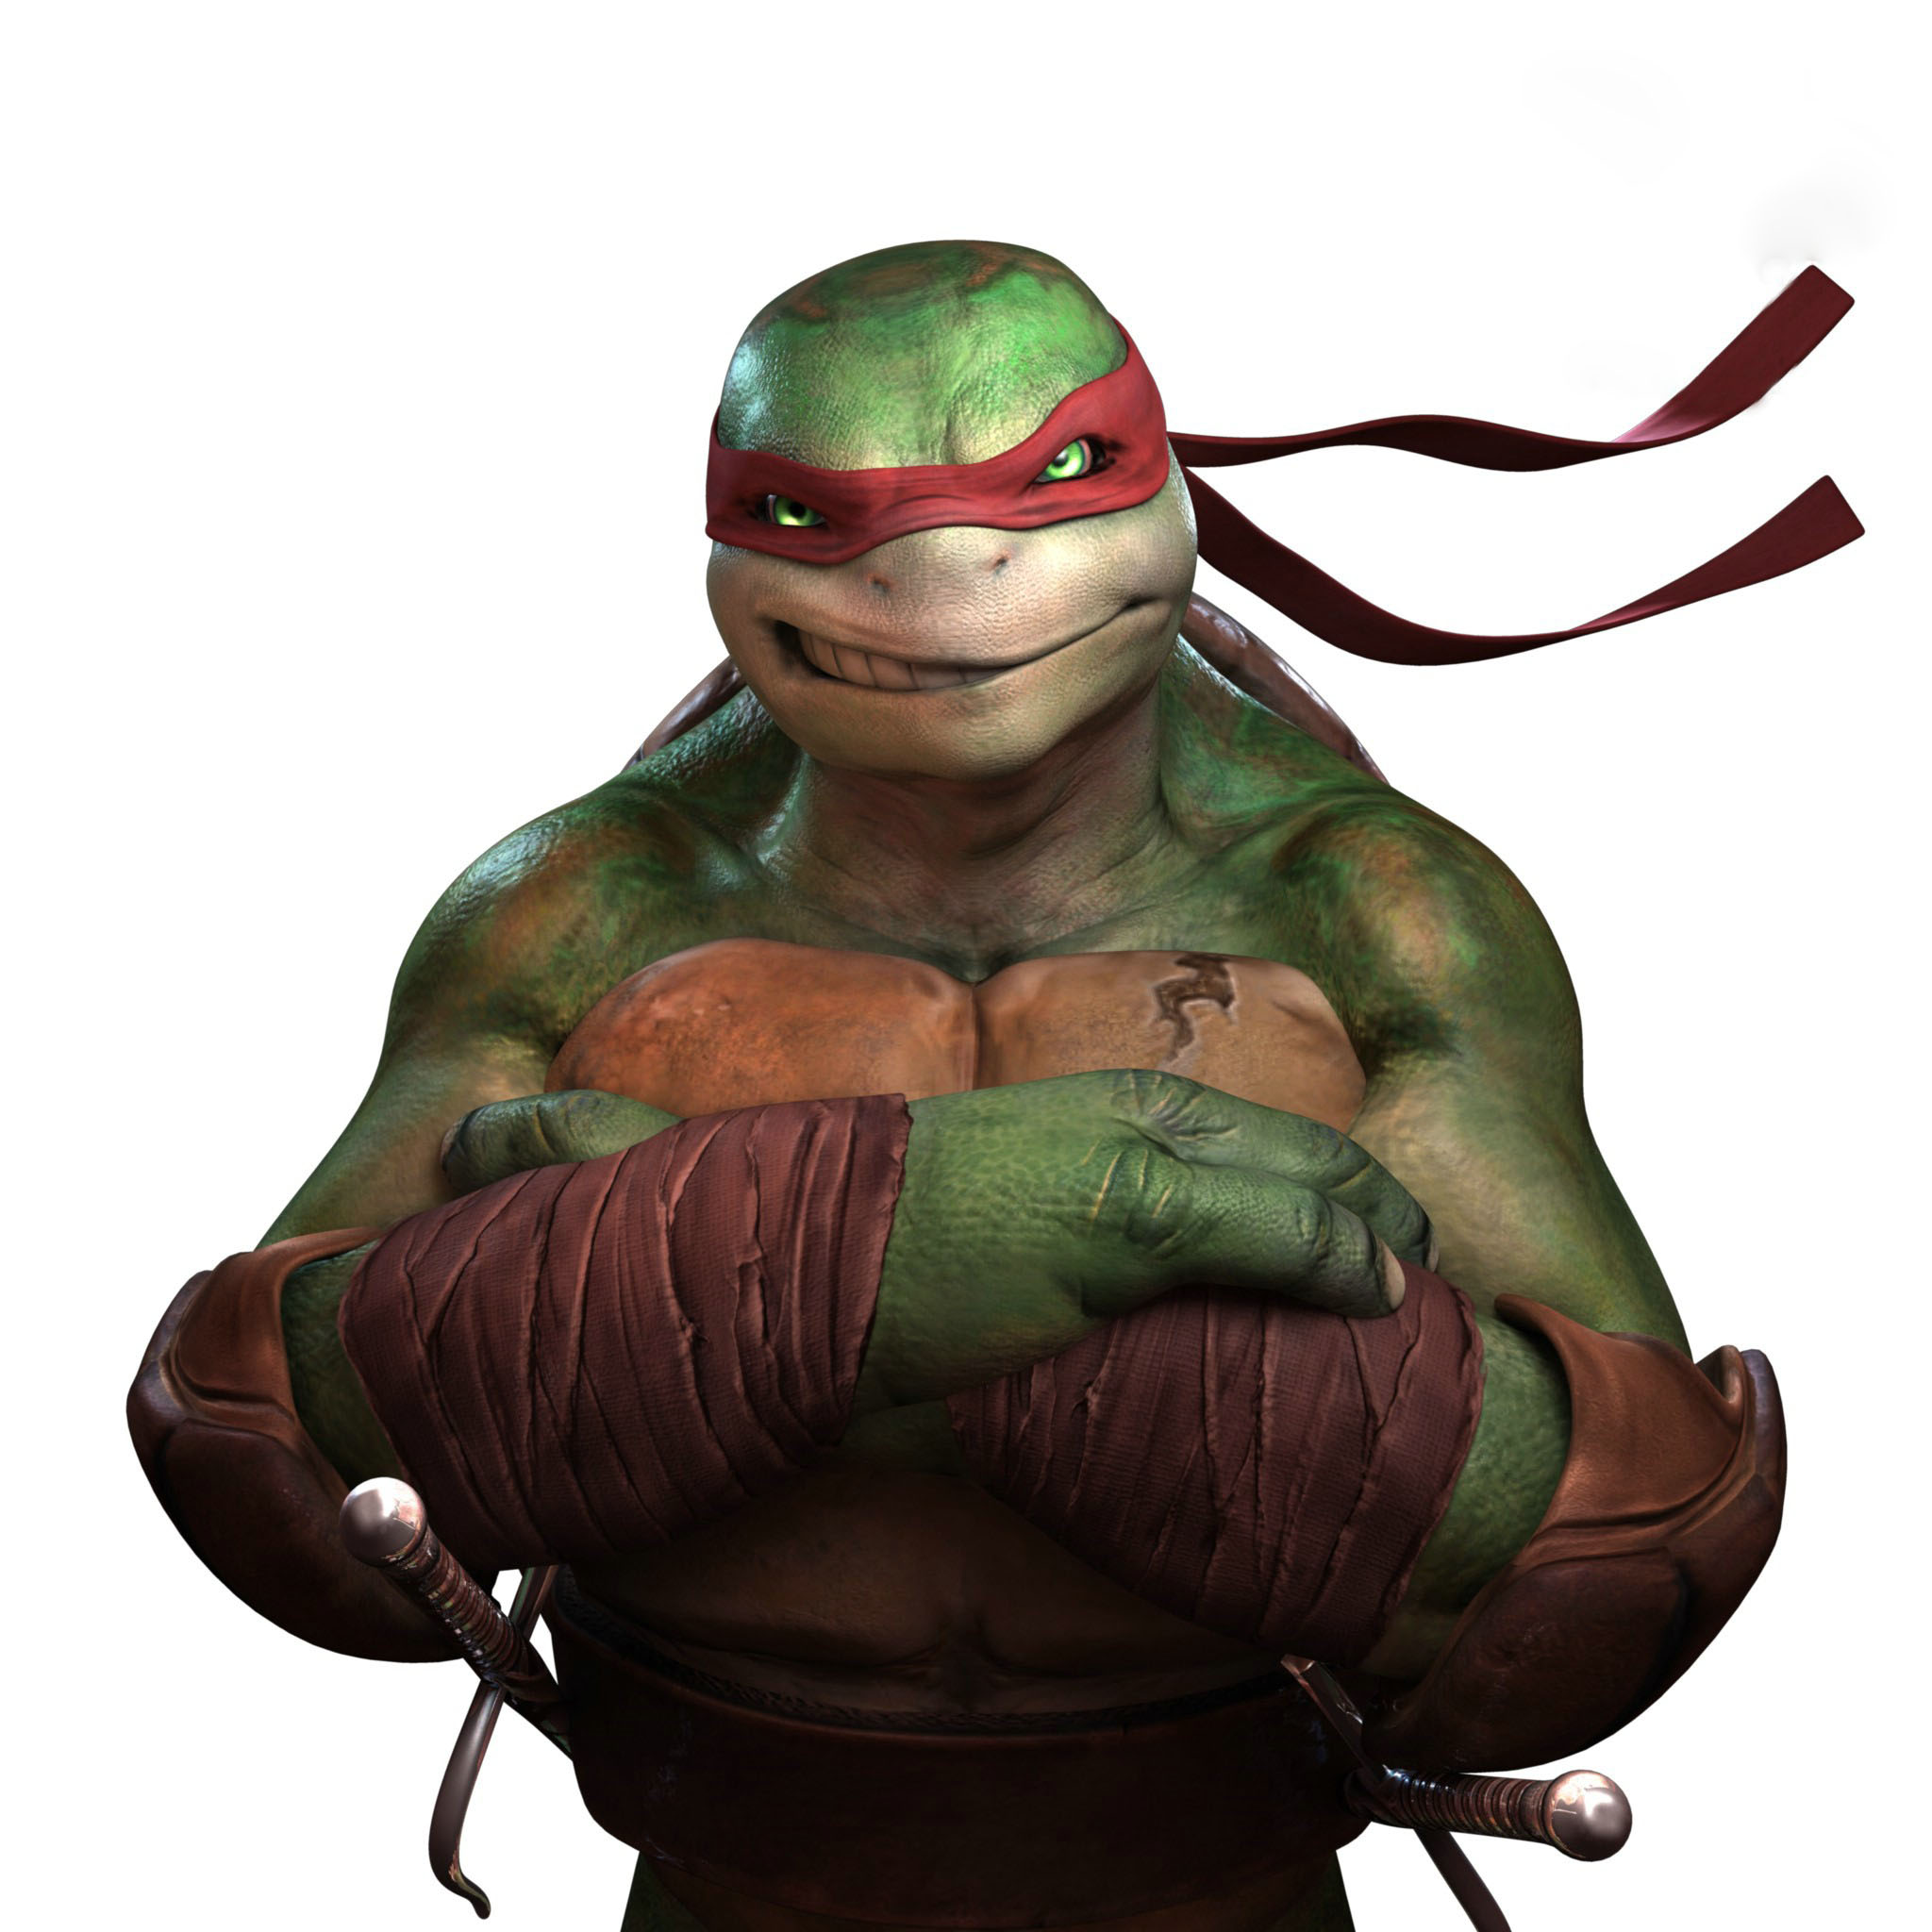 It?s Raphael?s turn to shine in new TMNT: Out of the Shadows video